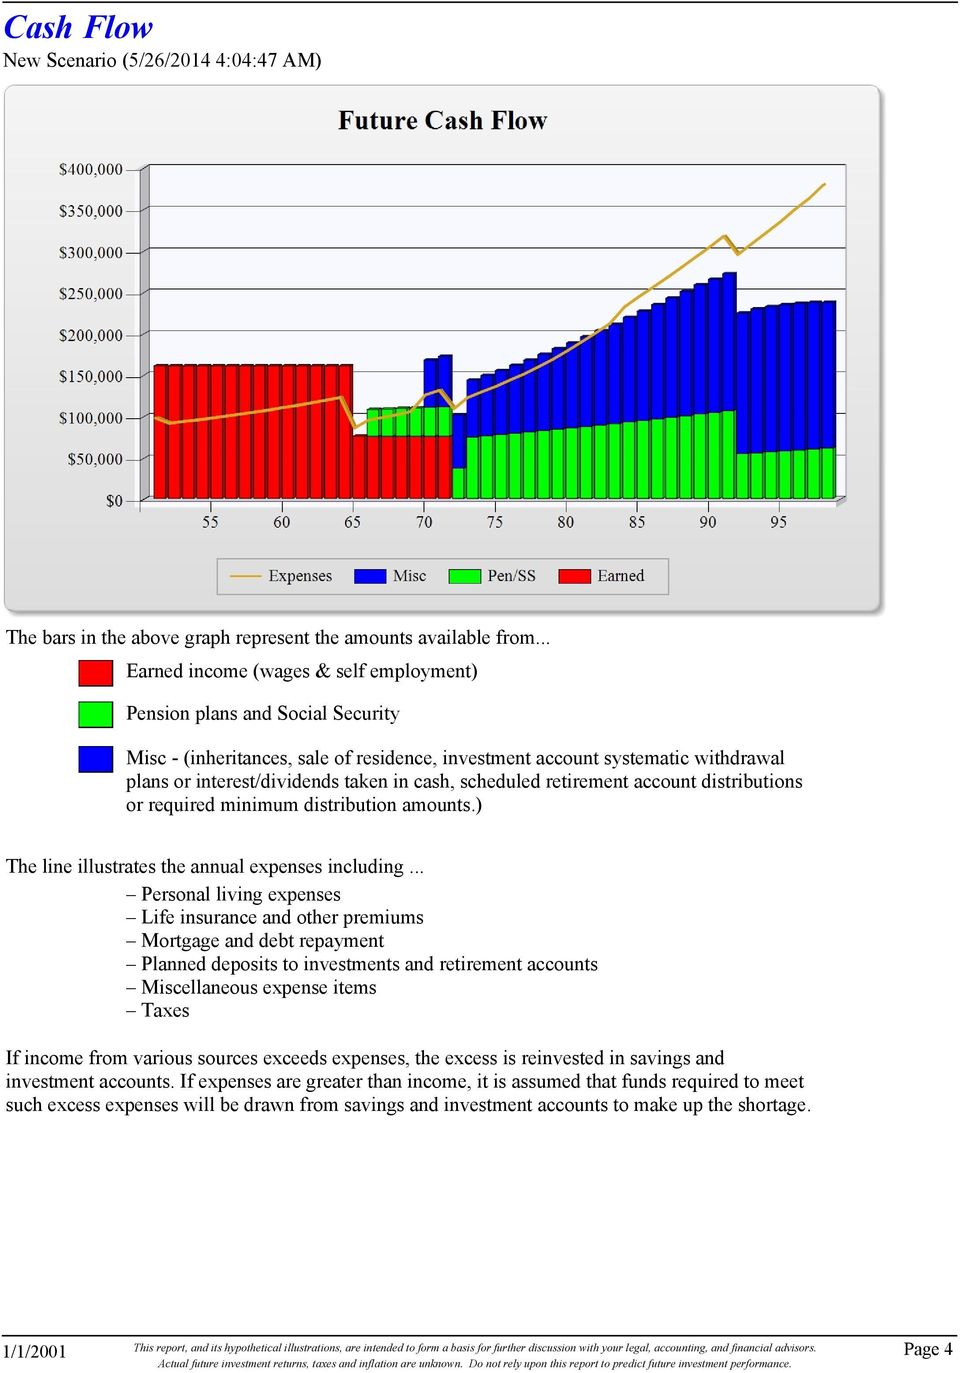 cash, scheduled retirement account distributions or required minimum distribution amounts.) The line illustrates the annual expenses including.